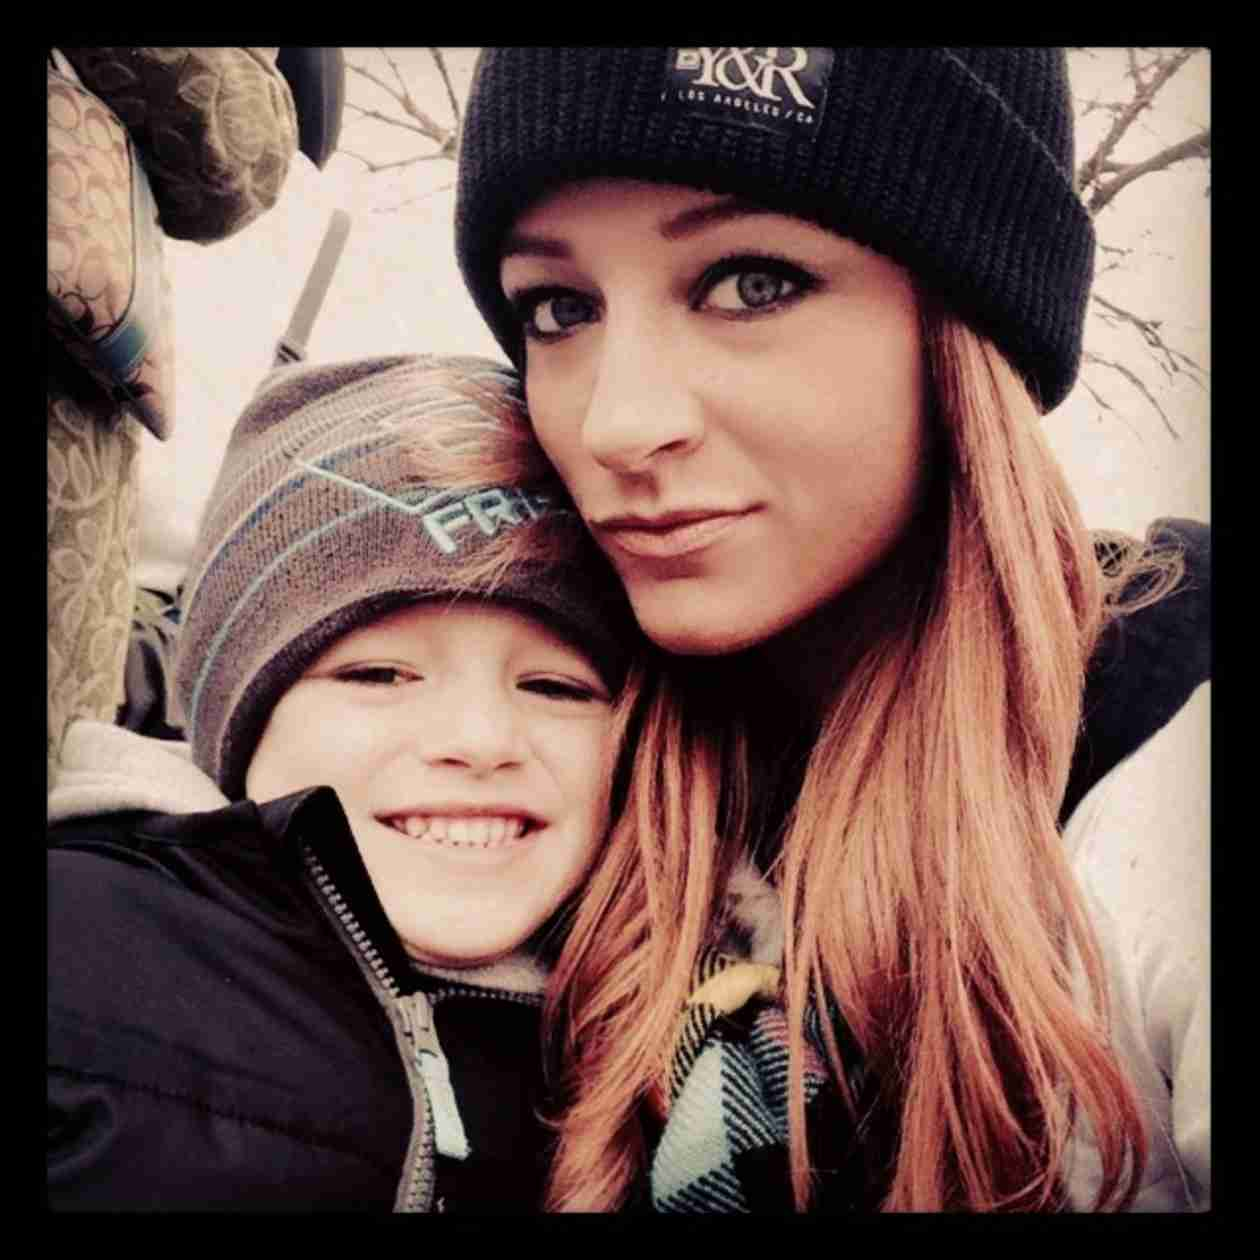 Maci Bookout Got Hair Extensions — See Her New Look! (PHOTO)